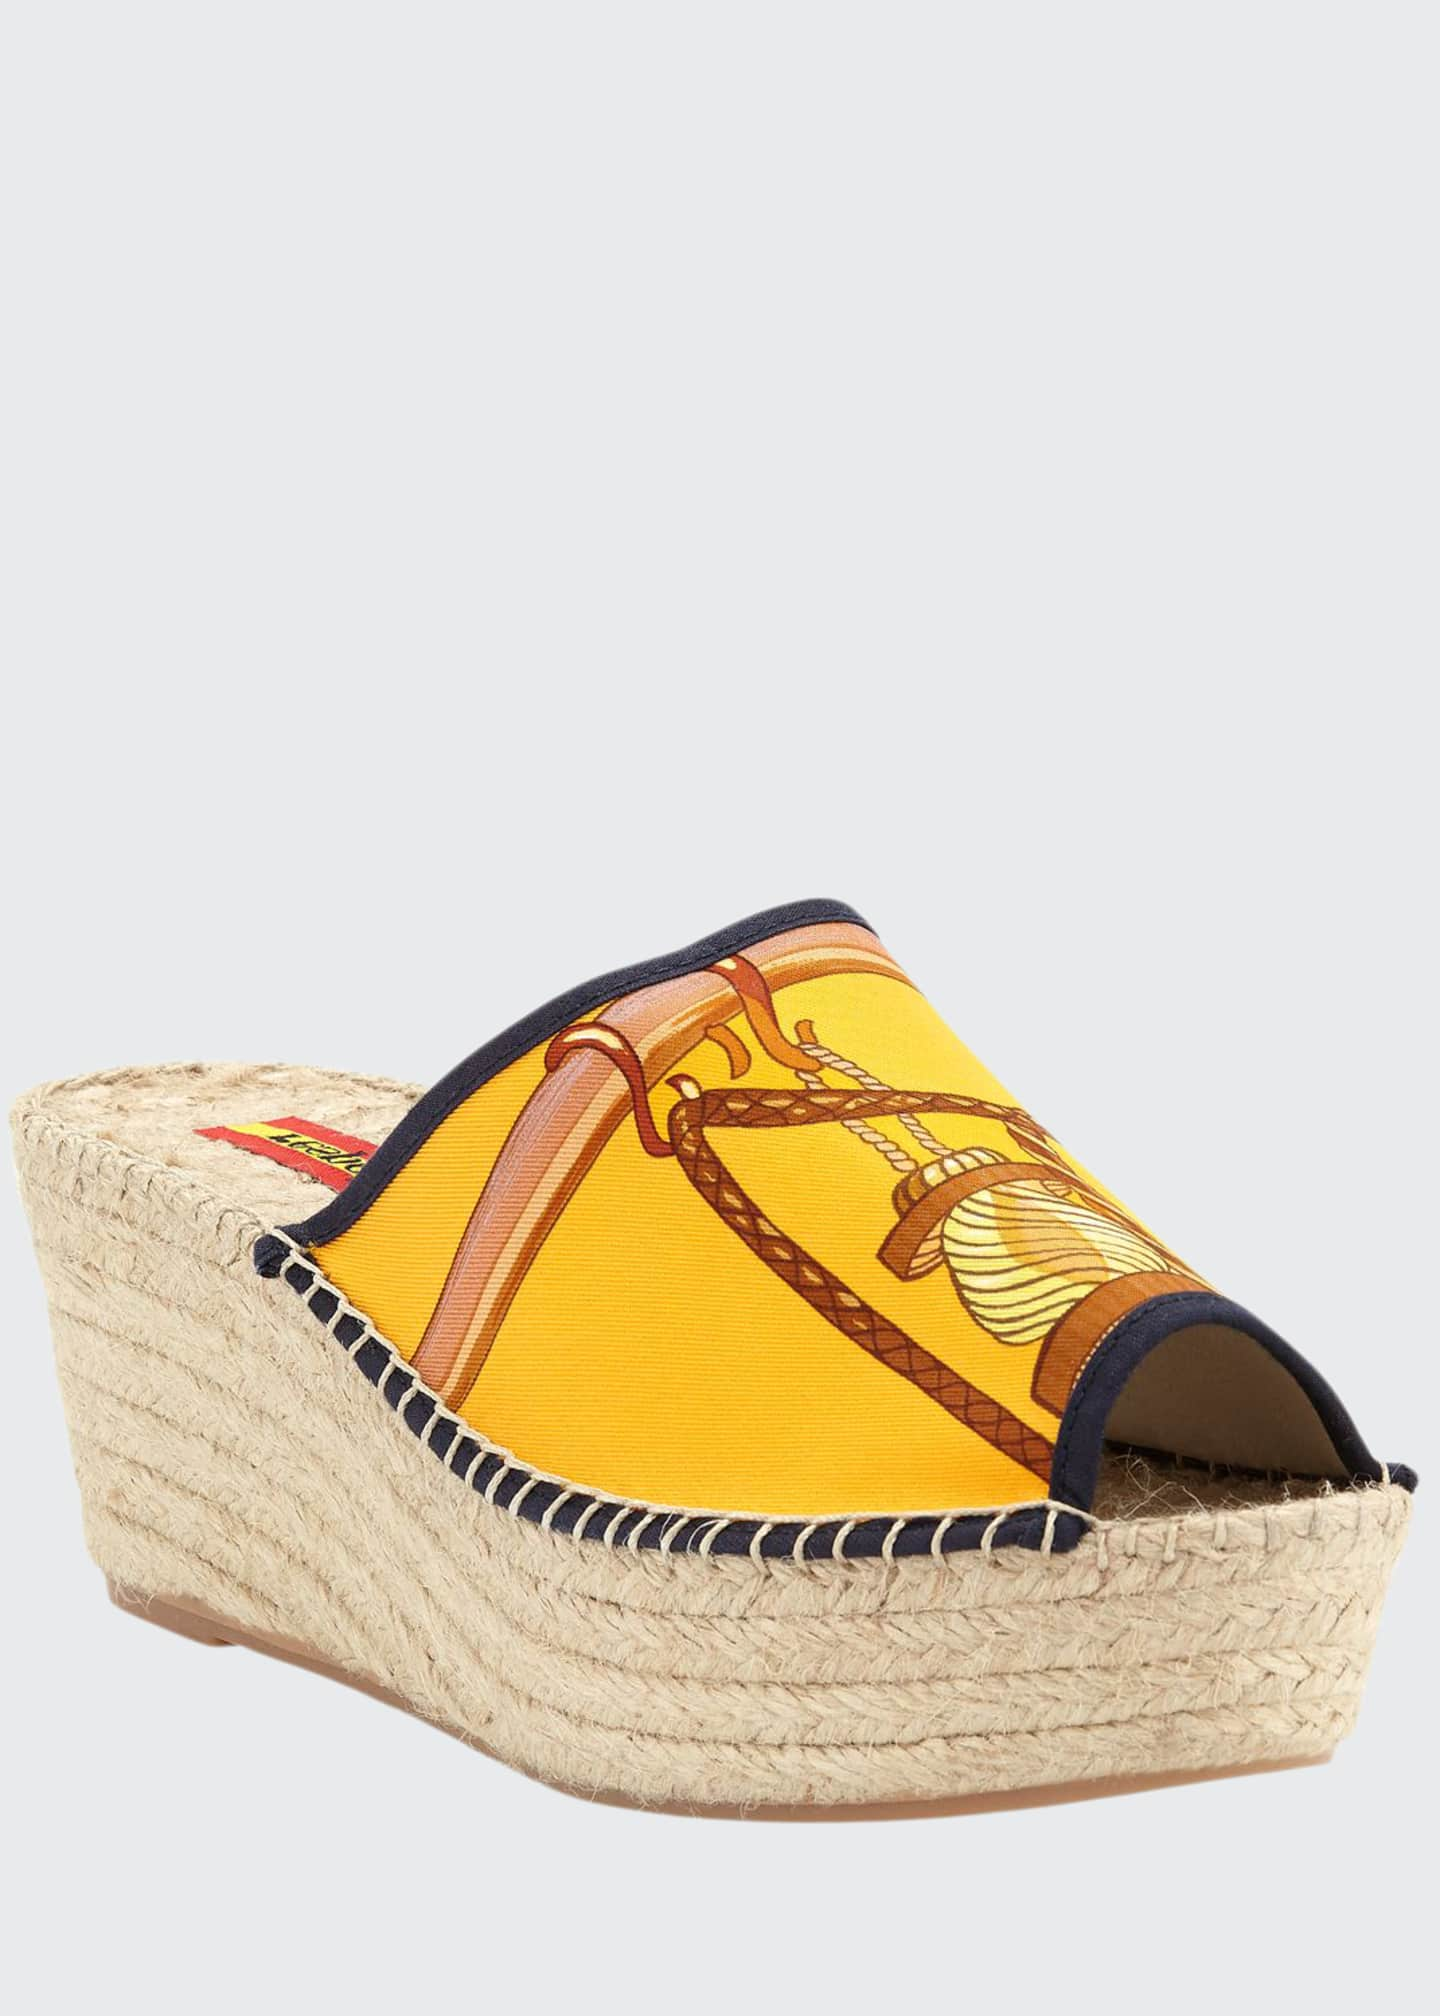 Respoke Charo Wedge Slide Espadrille Sandals